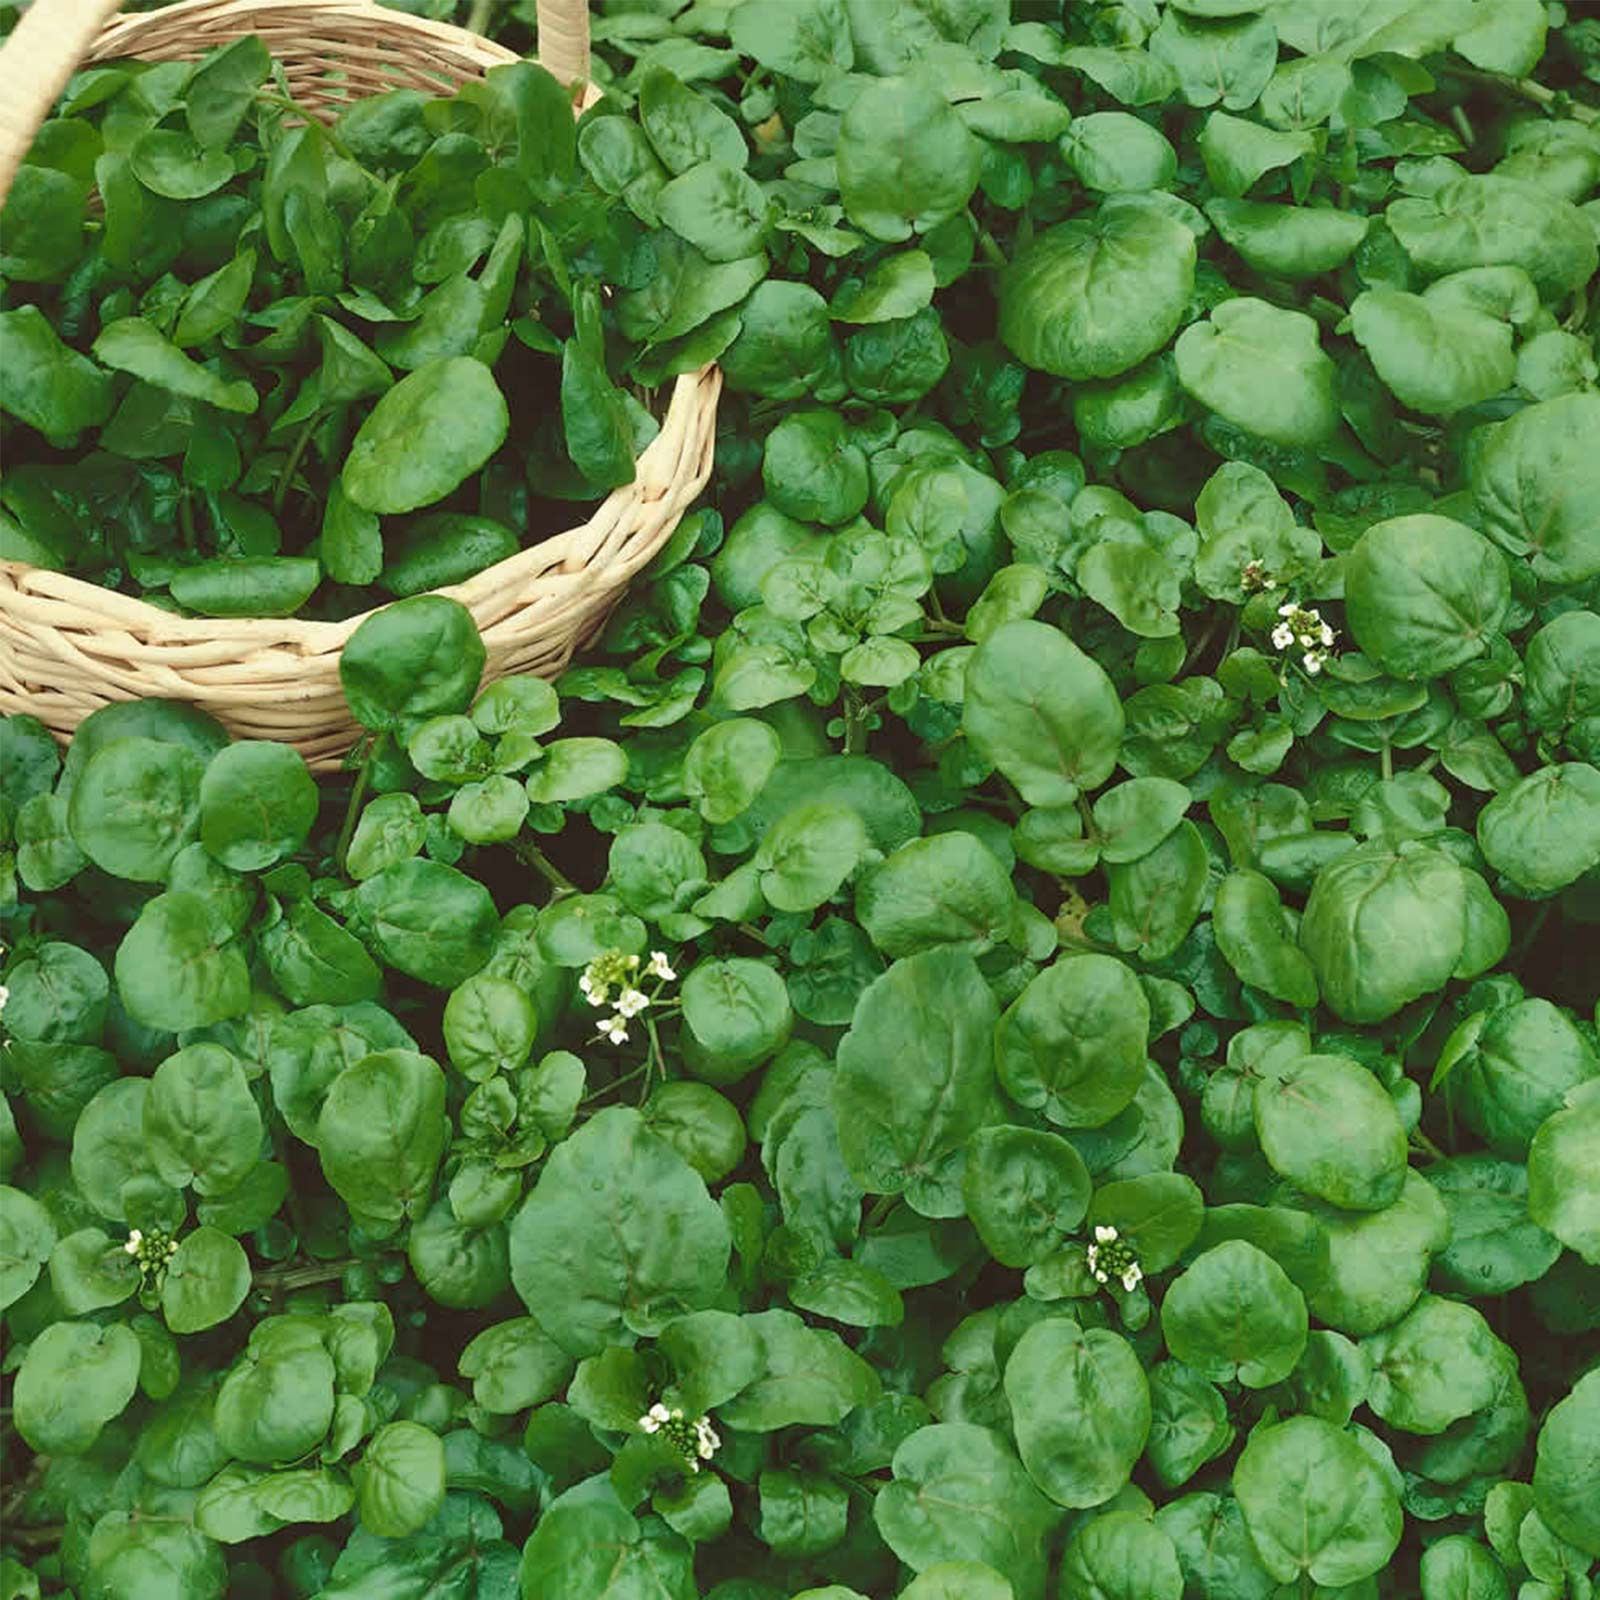 CURLED CRESS SEEDS 500 edible herbs GREEN LEAFY vegetables GARDEN FREE SHIPPING